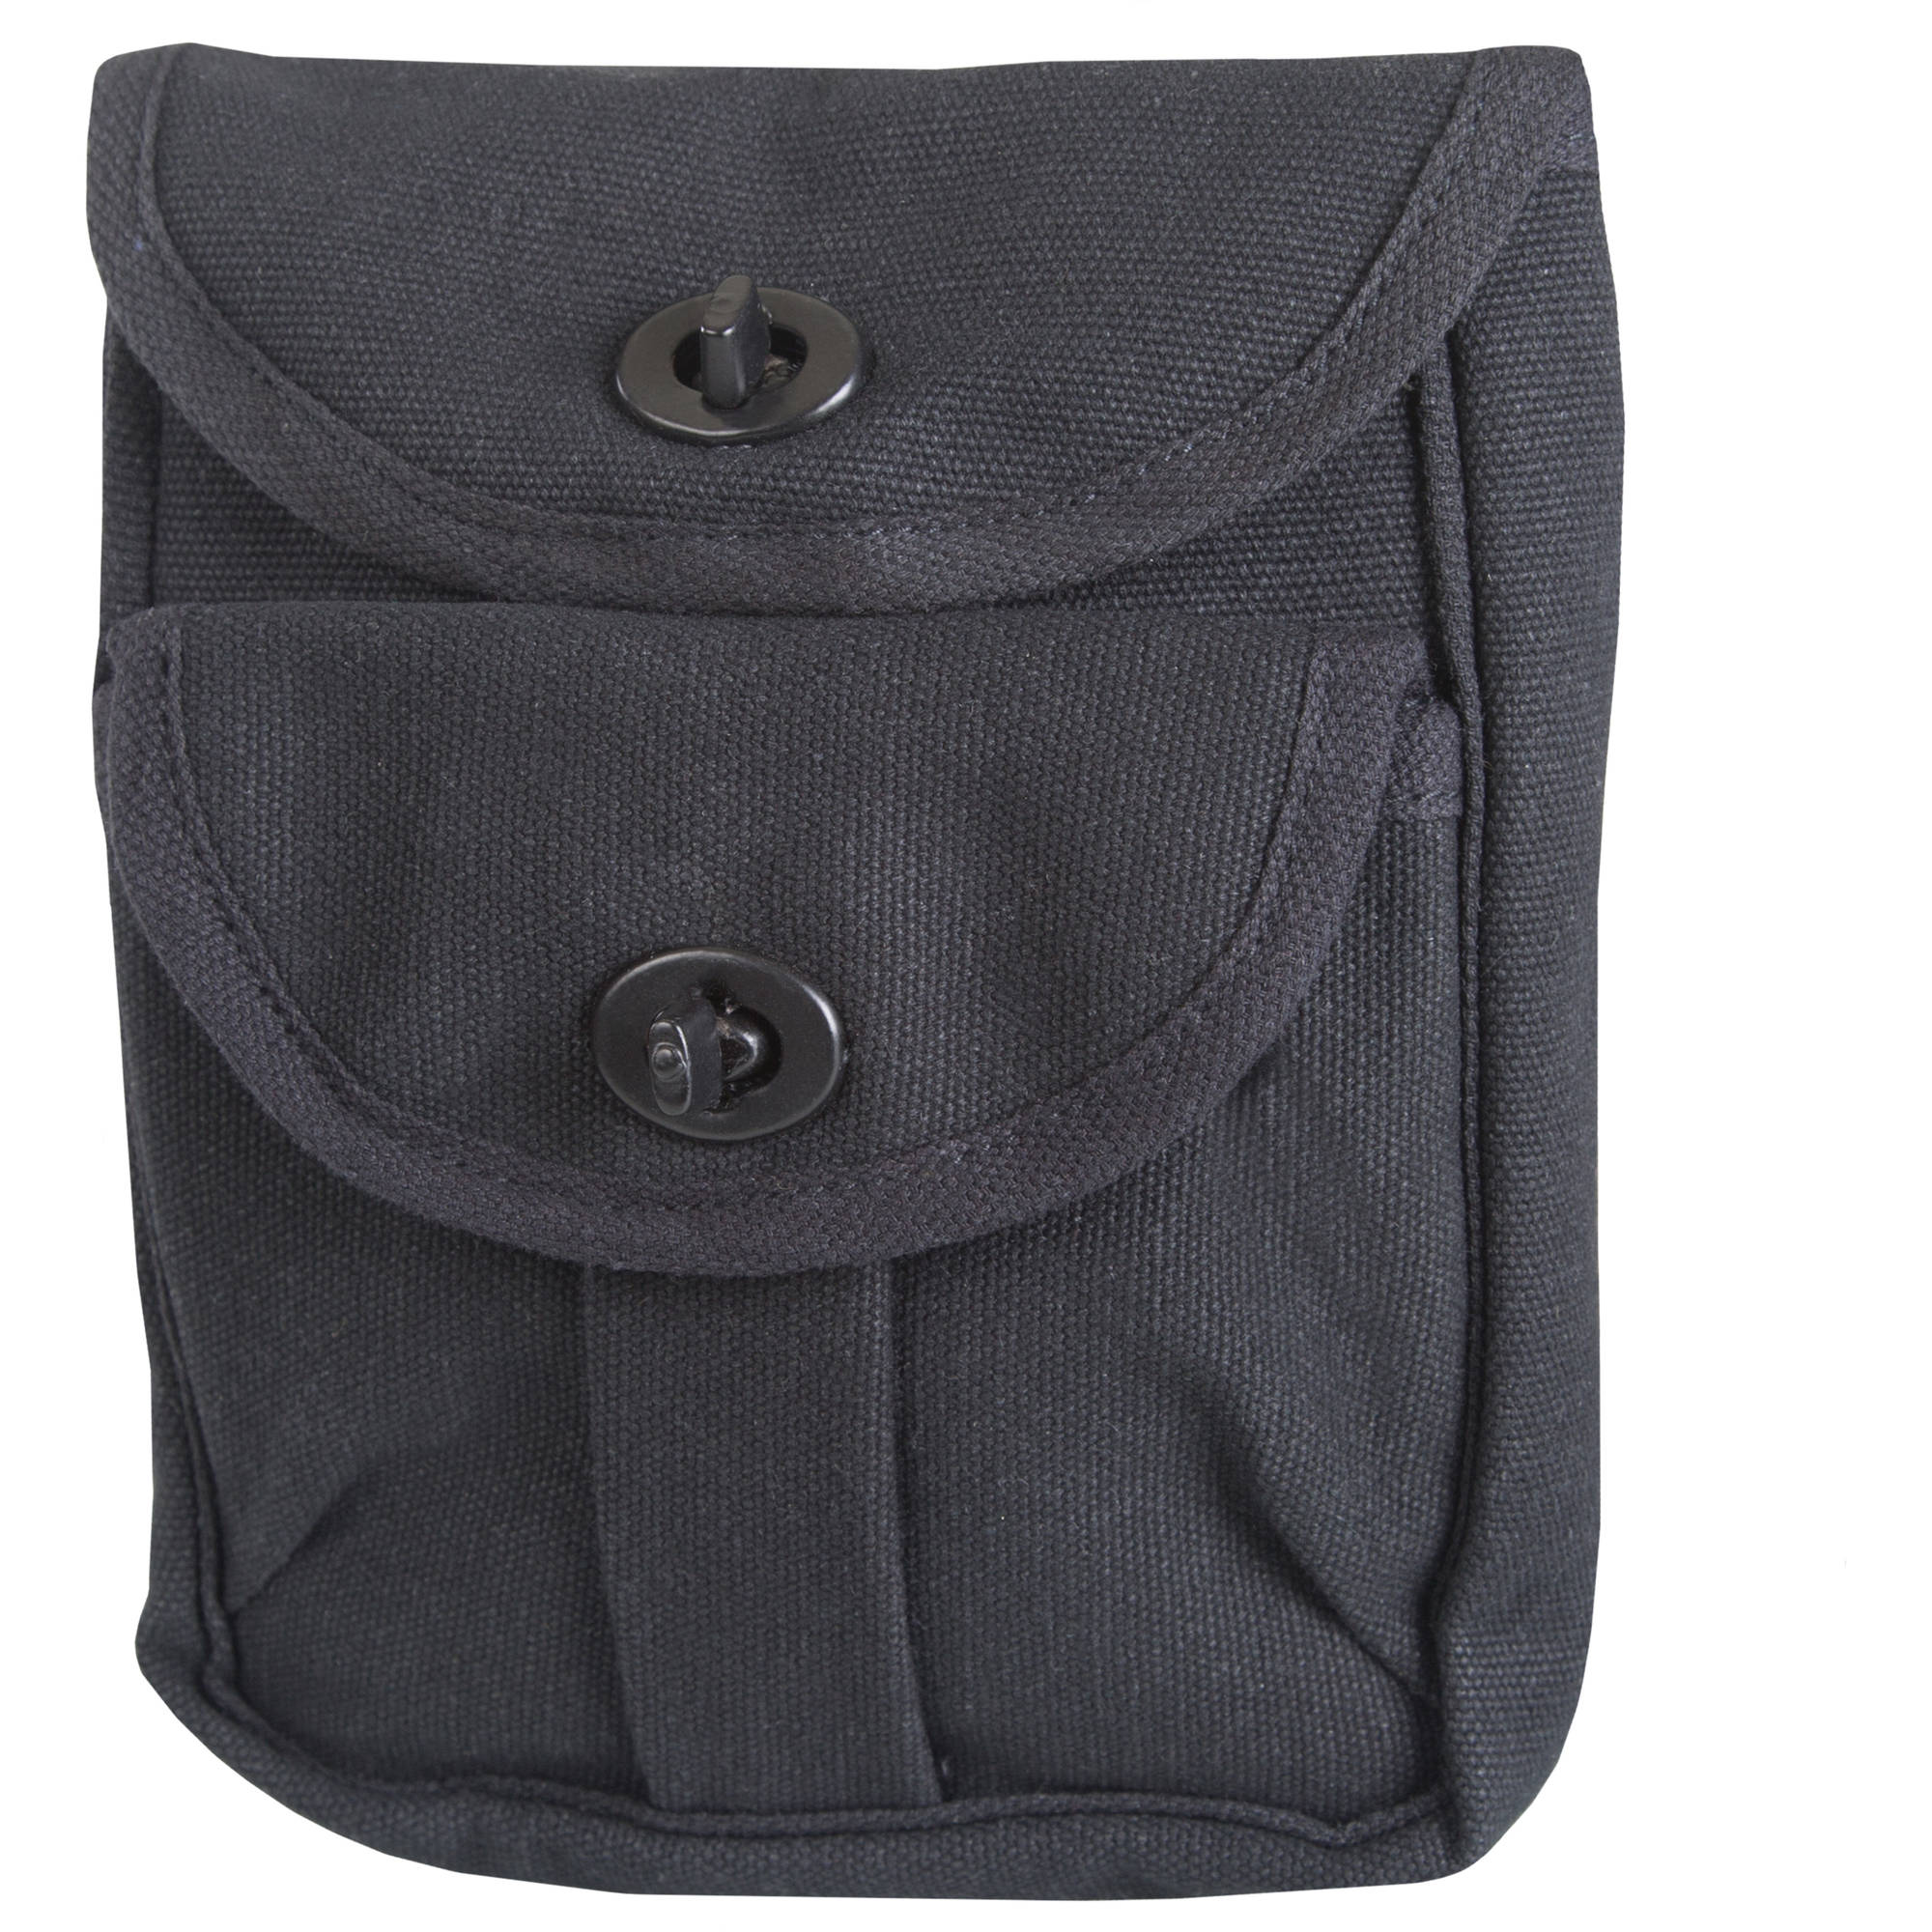 Stansport 2 Pocket Ammo Pouch, Black